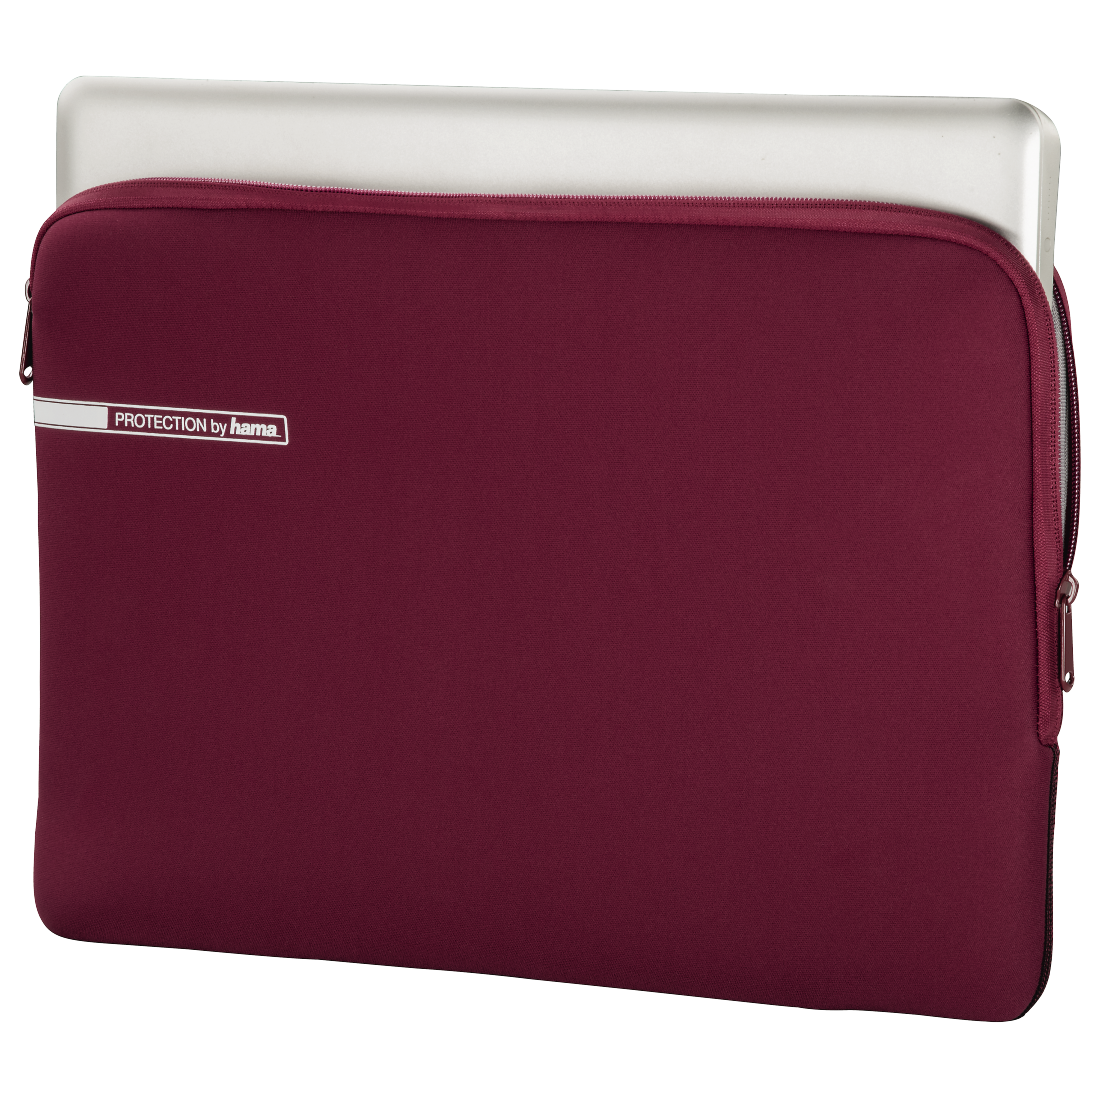 abx2 High-Res Image 2 - Hama, Neoprene Style Notebook Sleeve, up to 34 cm (13.3), burgundy